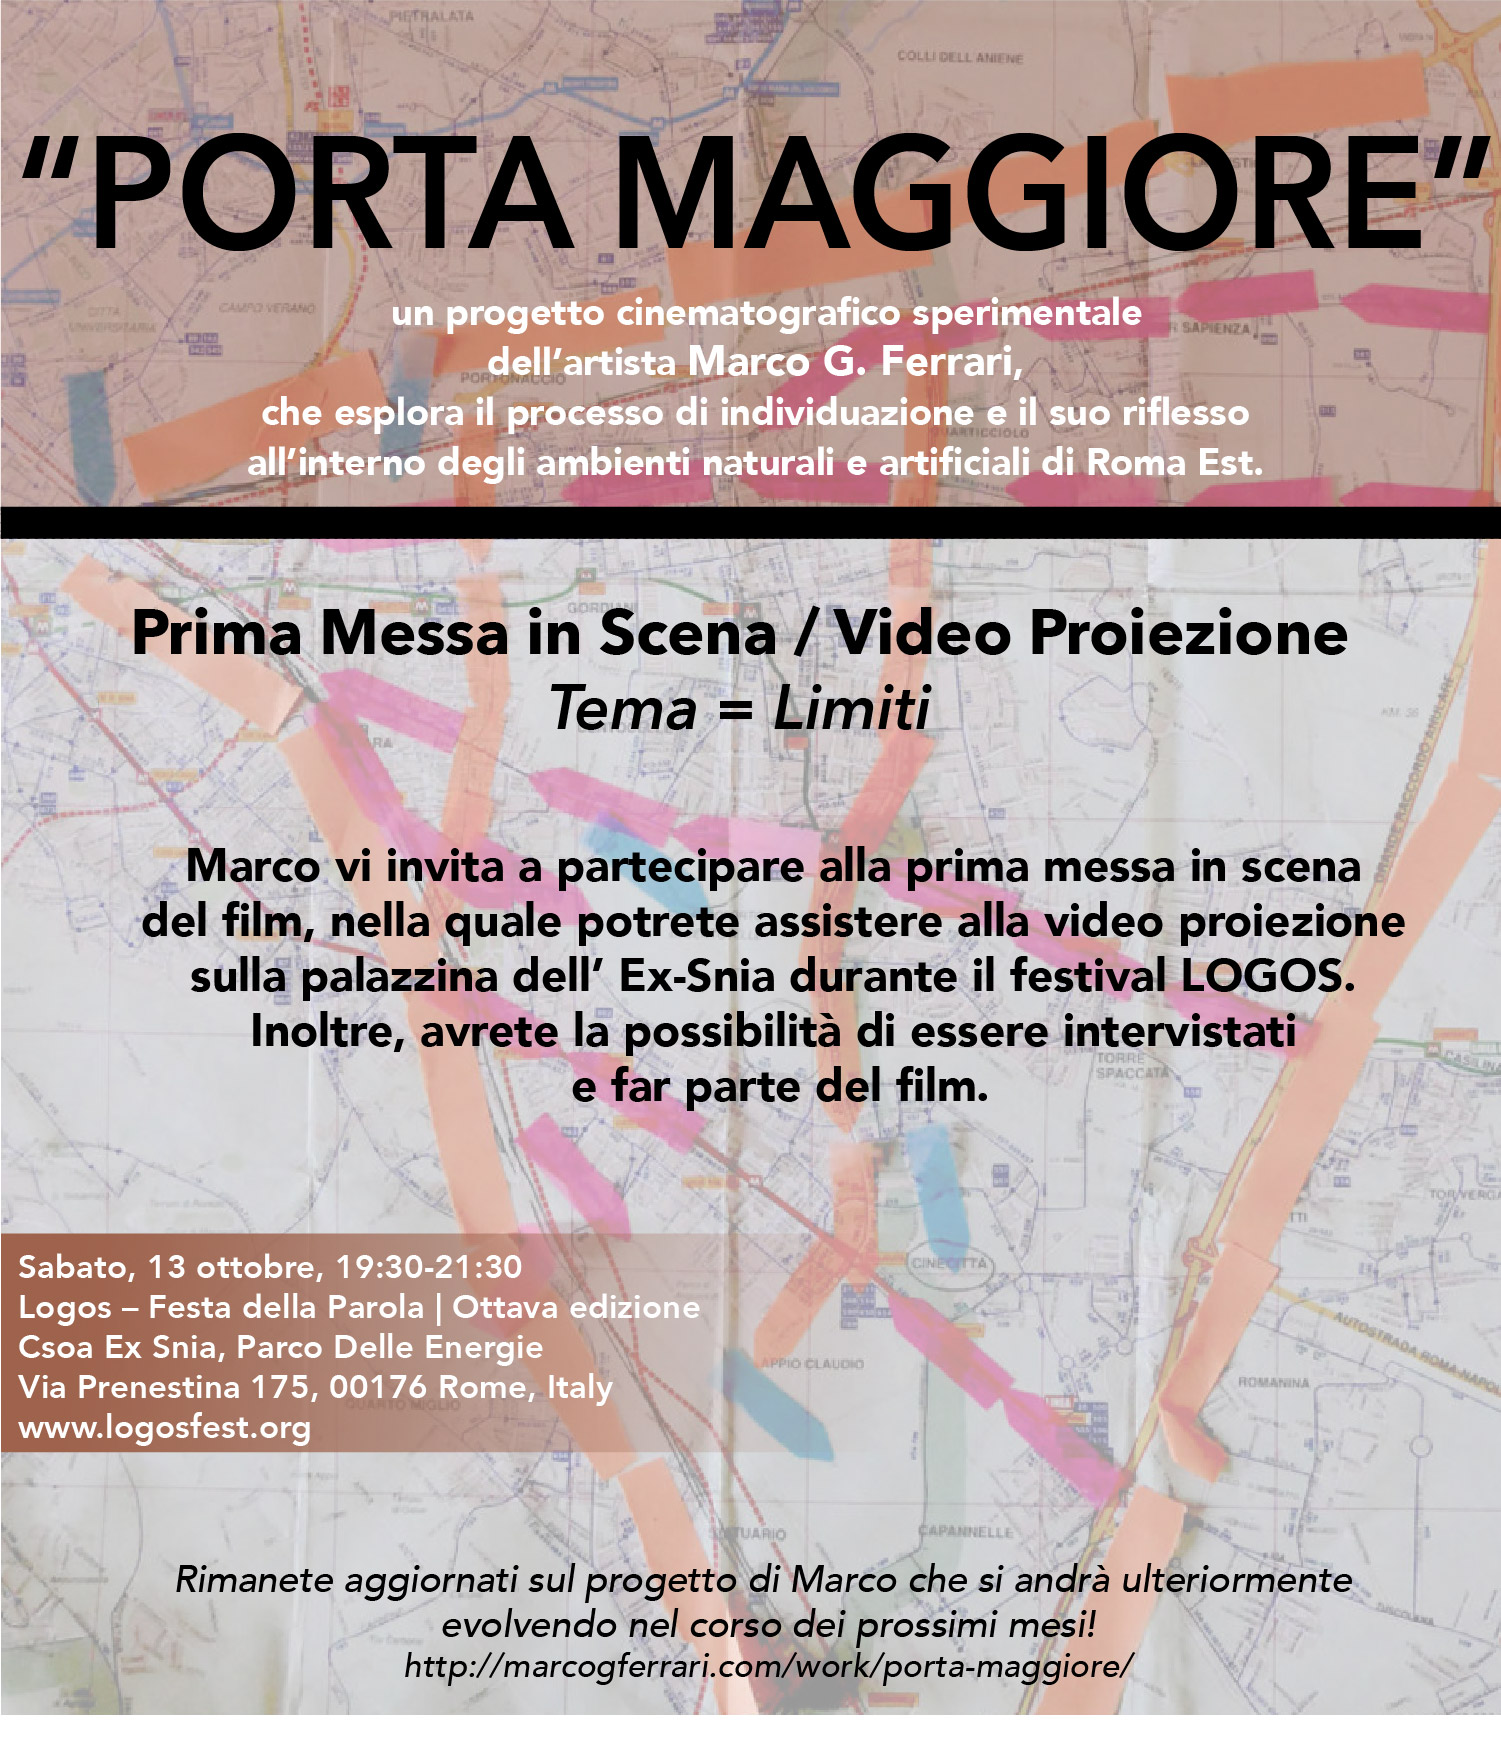 Saturday October 13, 2018 | Porta Maggiore: Prima Messa in Scena / Video Proiezione